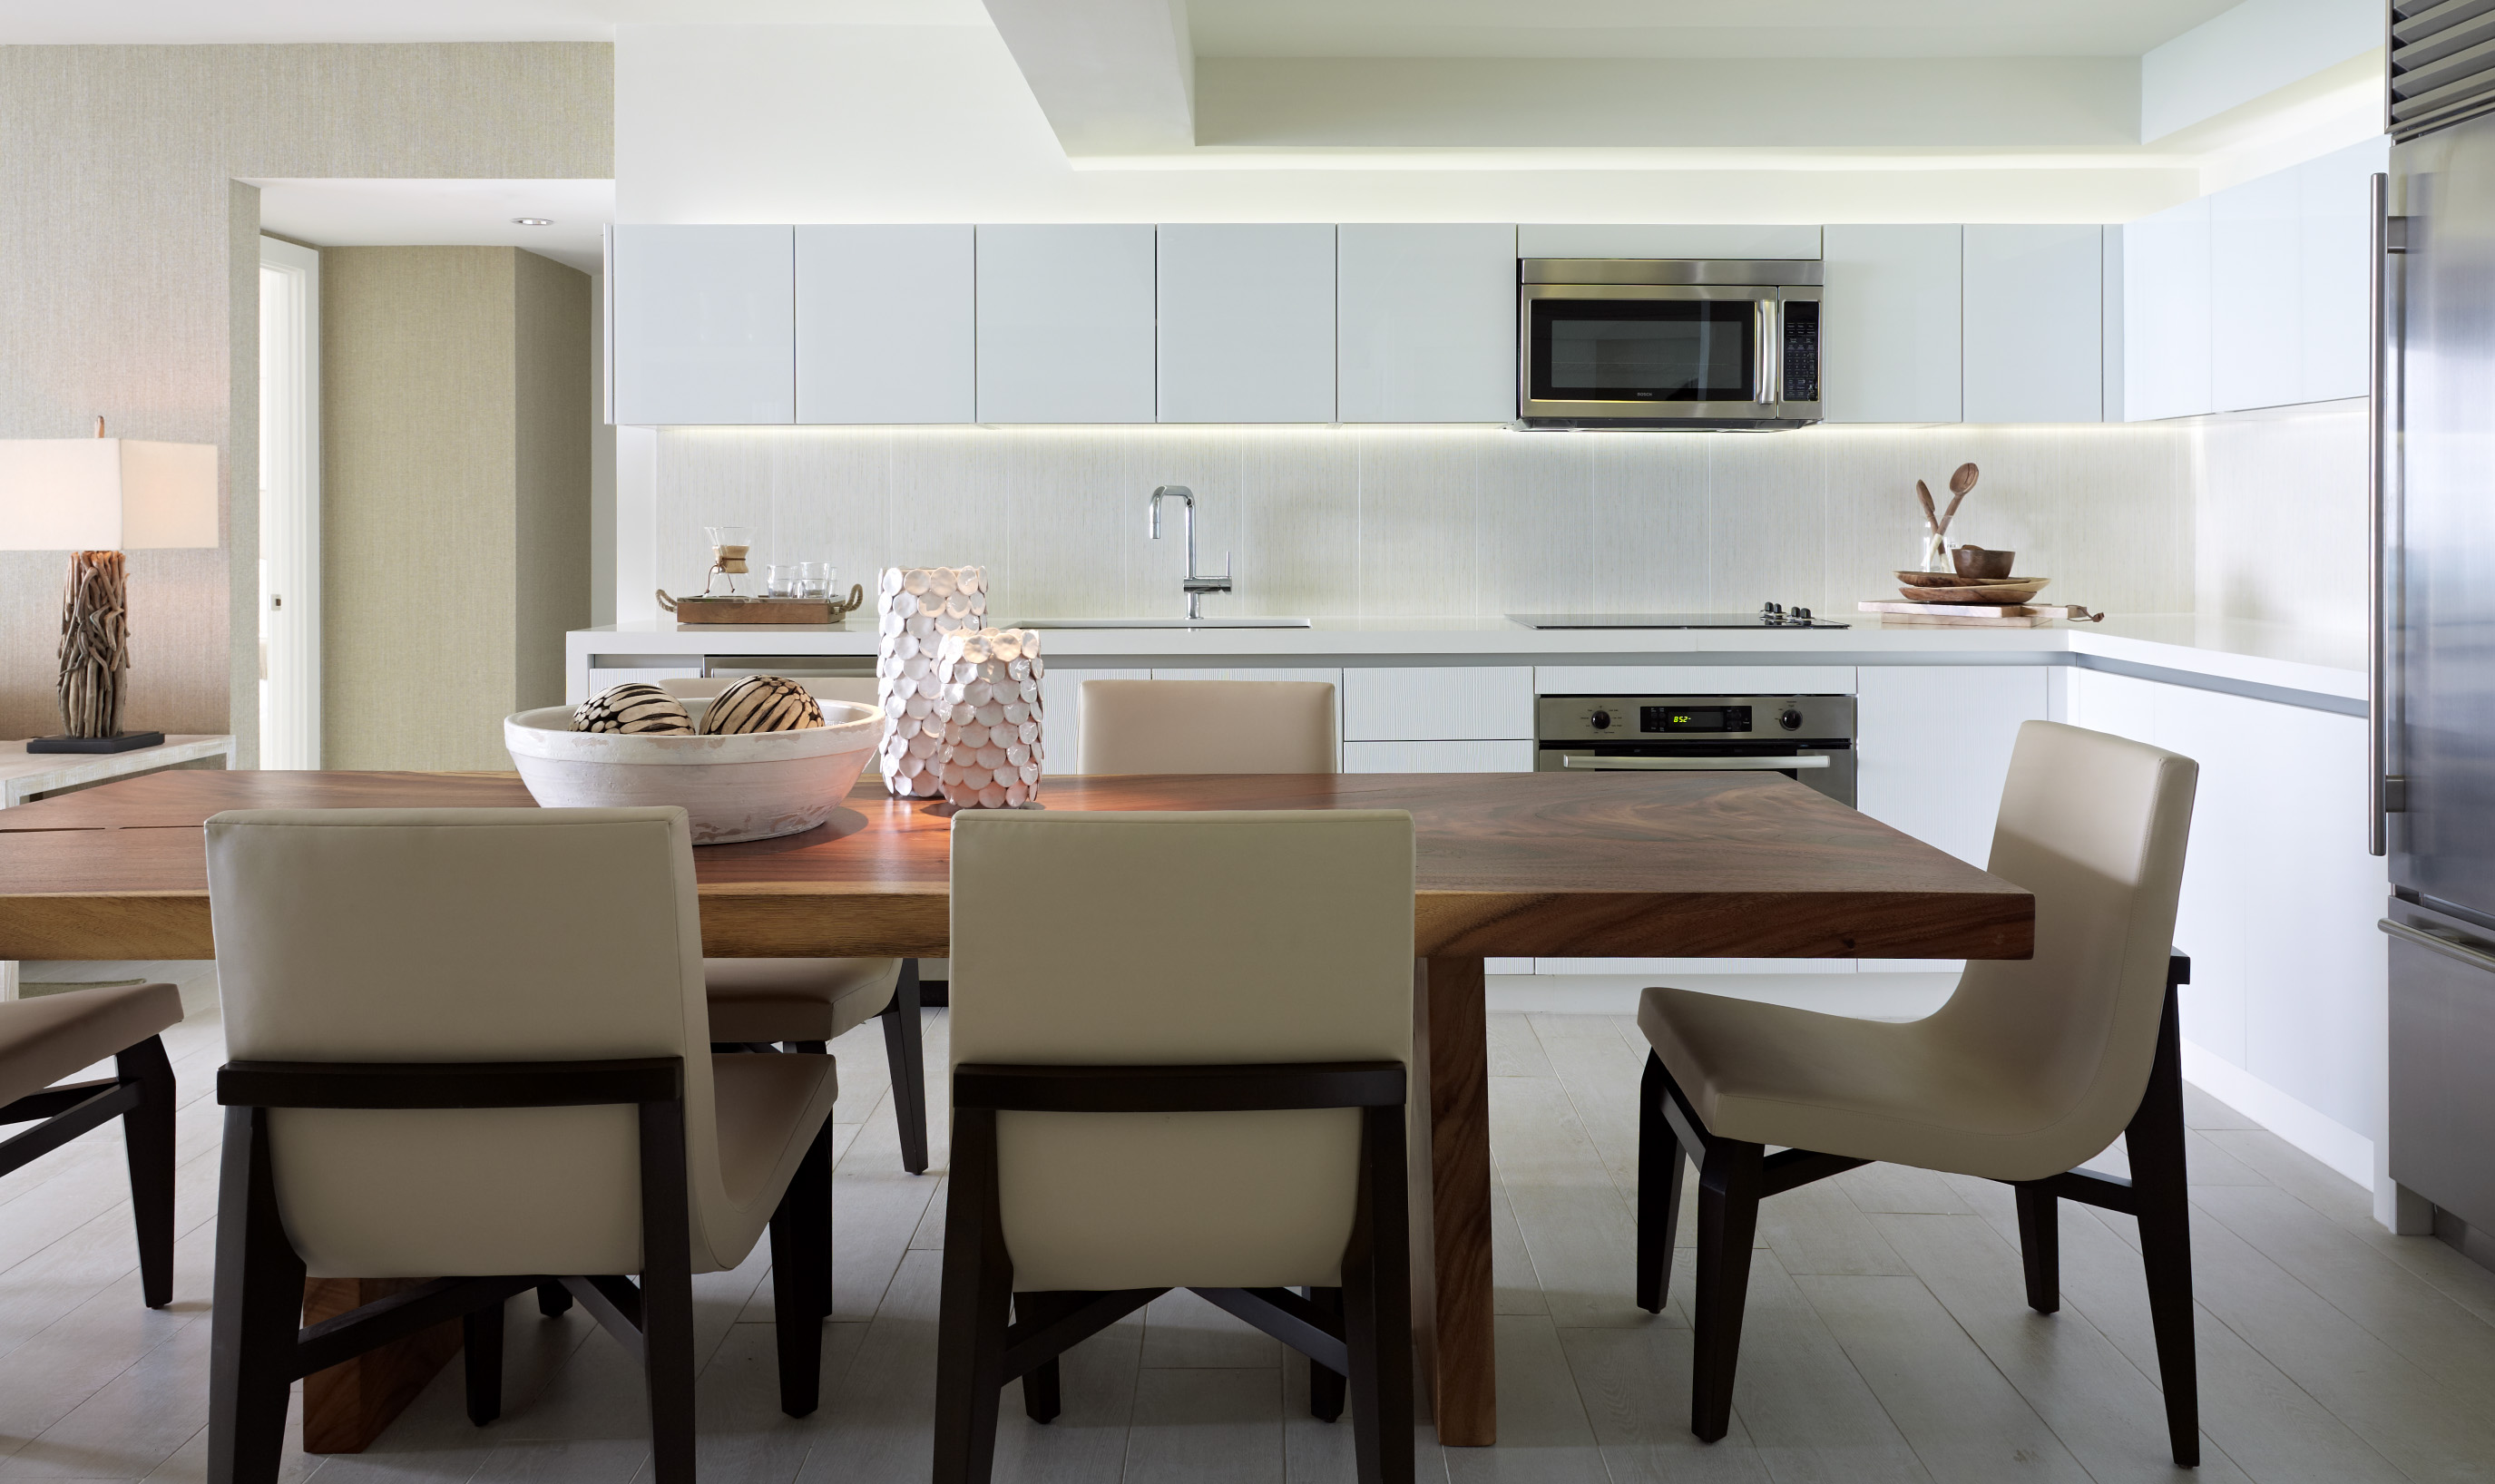 hotels in miami with kitchen cost to update debora aguiar design beachfront condos 1 hotel